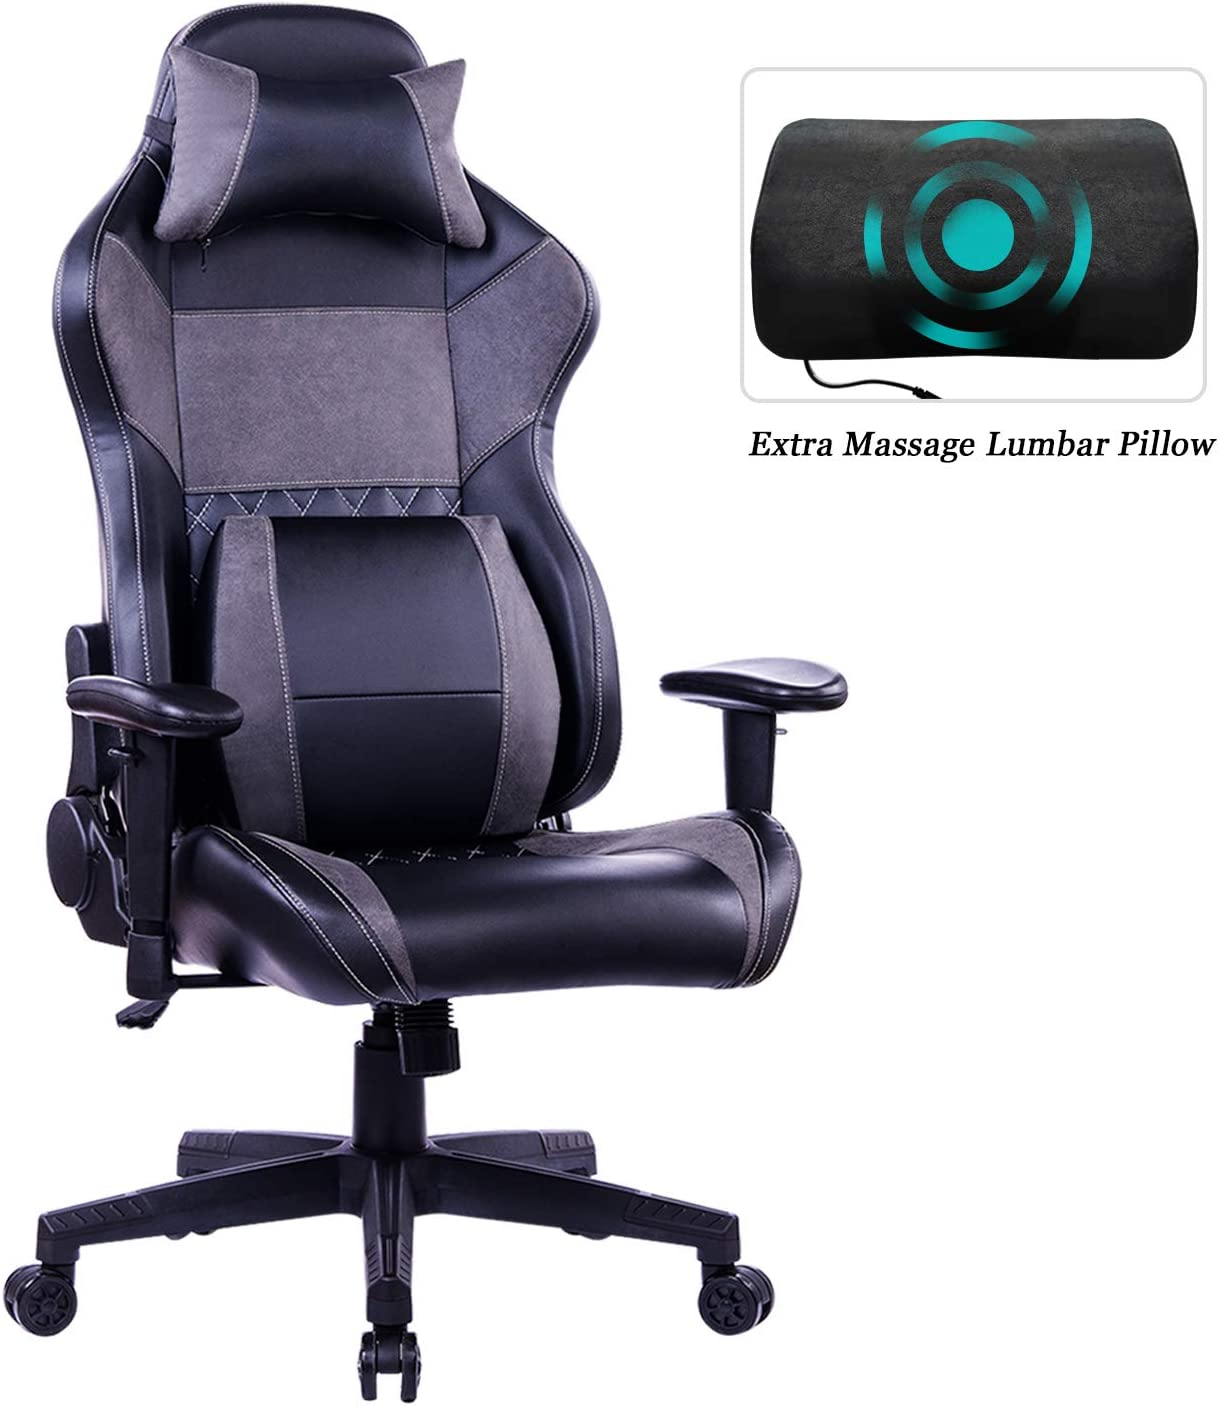 HEALGEN Gaming Office Chair with Large Lumbar Support,Reclining High Back Ergonomic Memory Foam Desk Chair,Racing Style PC Computer Executive Leather Chair with Headrest GM8260 Grey